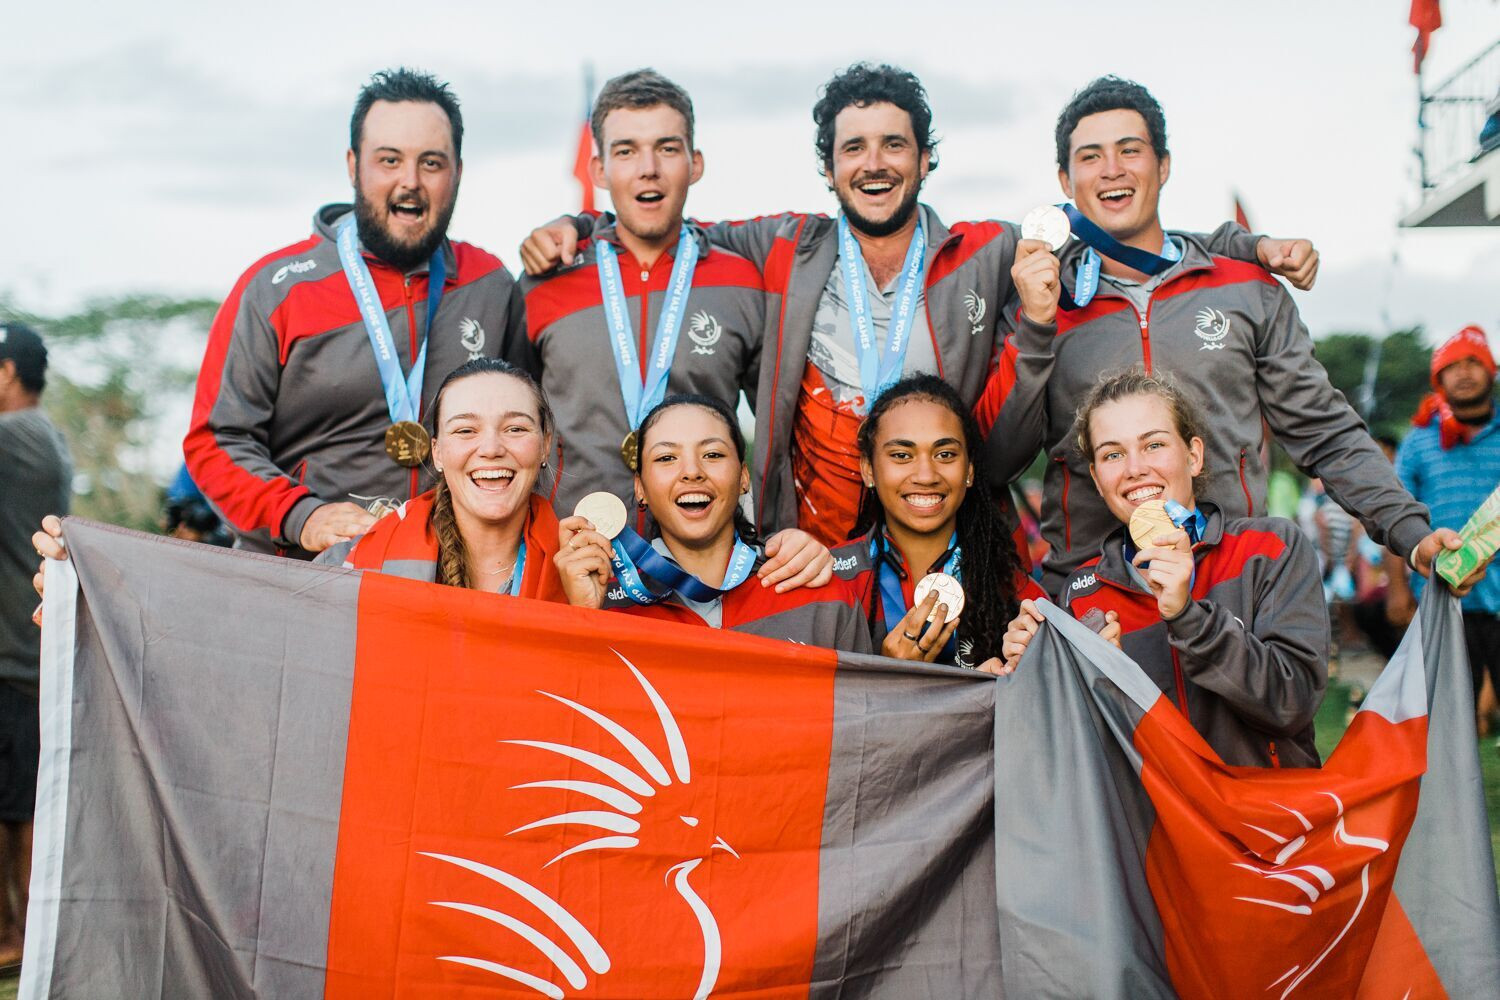 New Caledonia won all four golf golds to tighten their grip on the medal table ©Samoa 2019